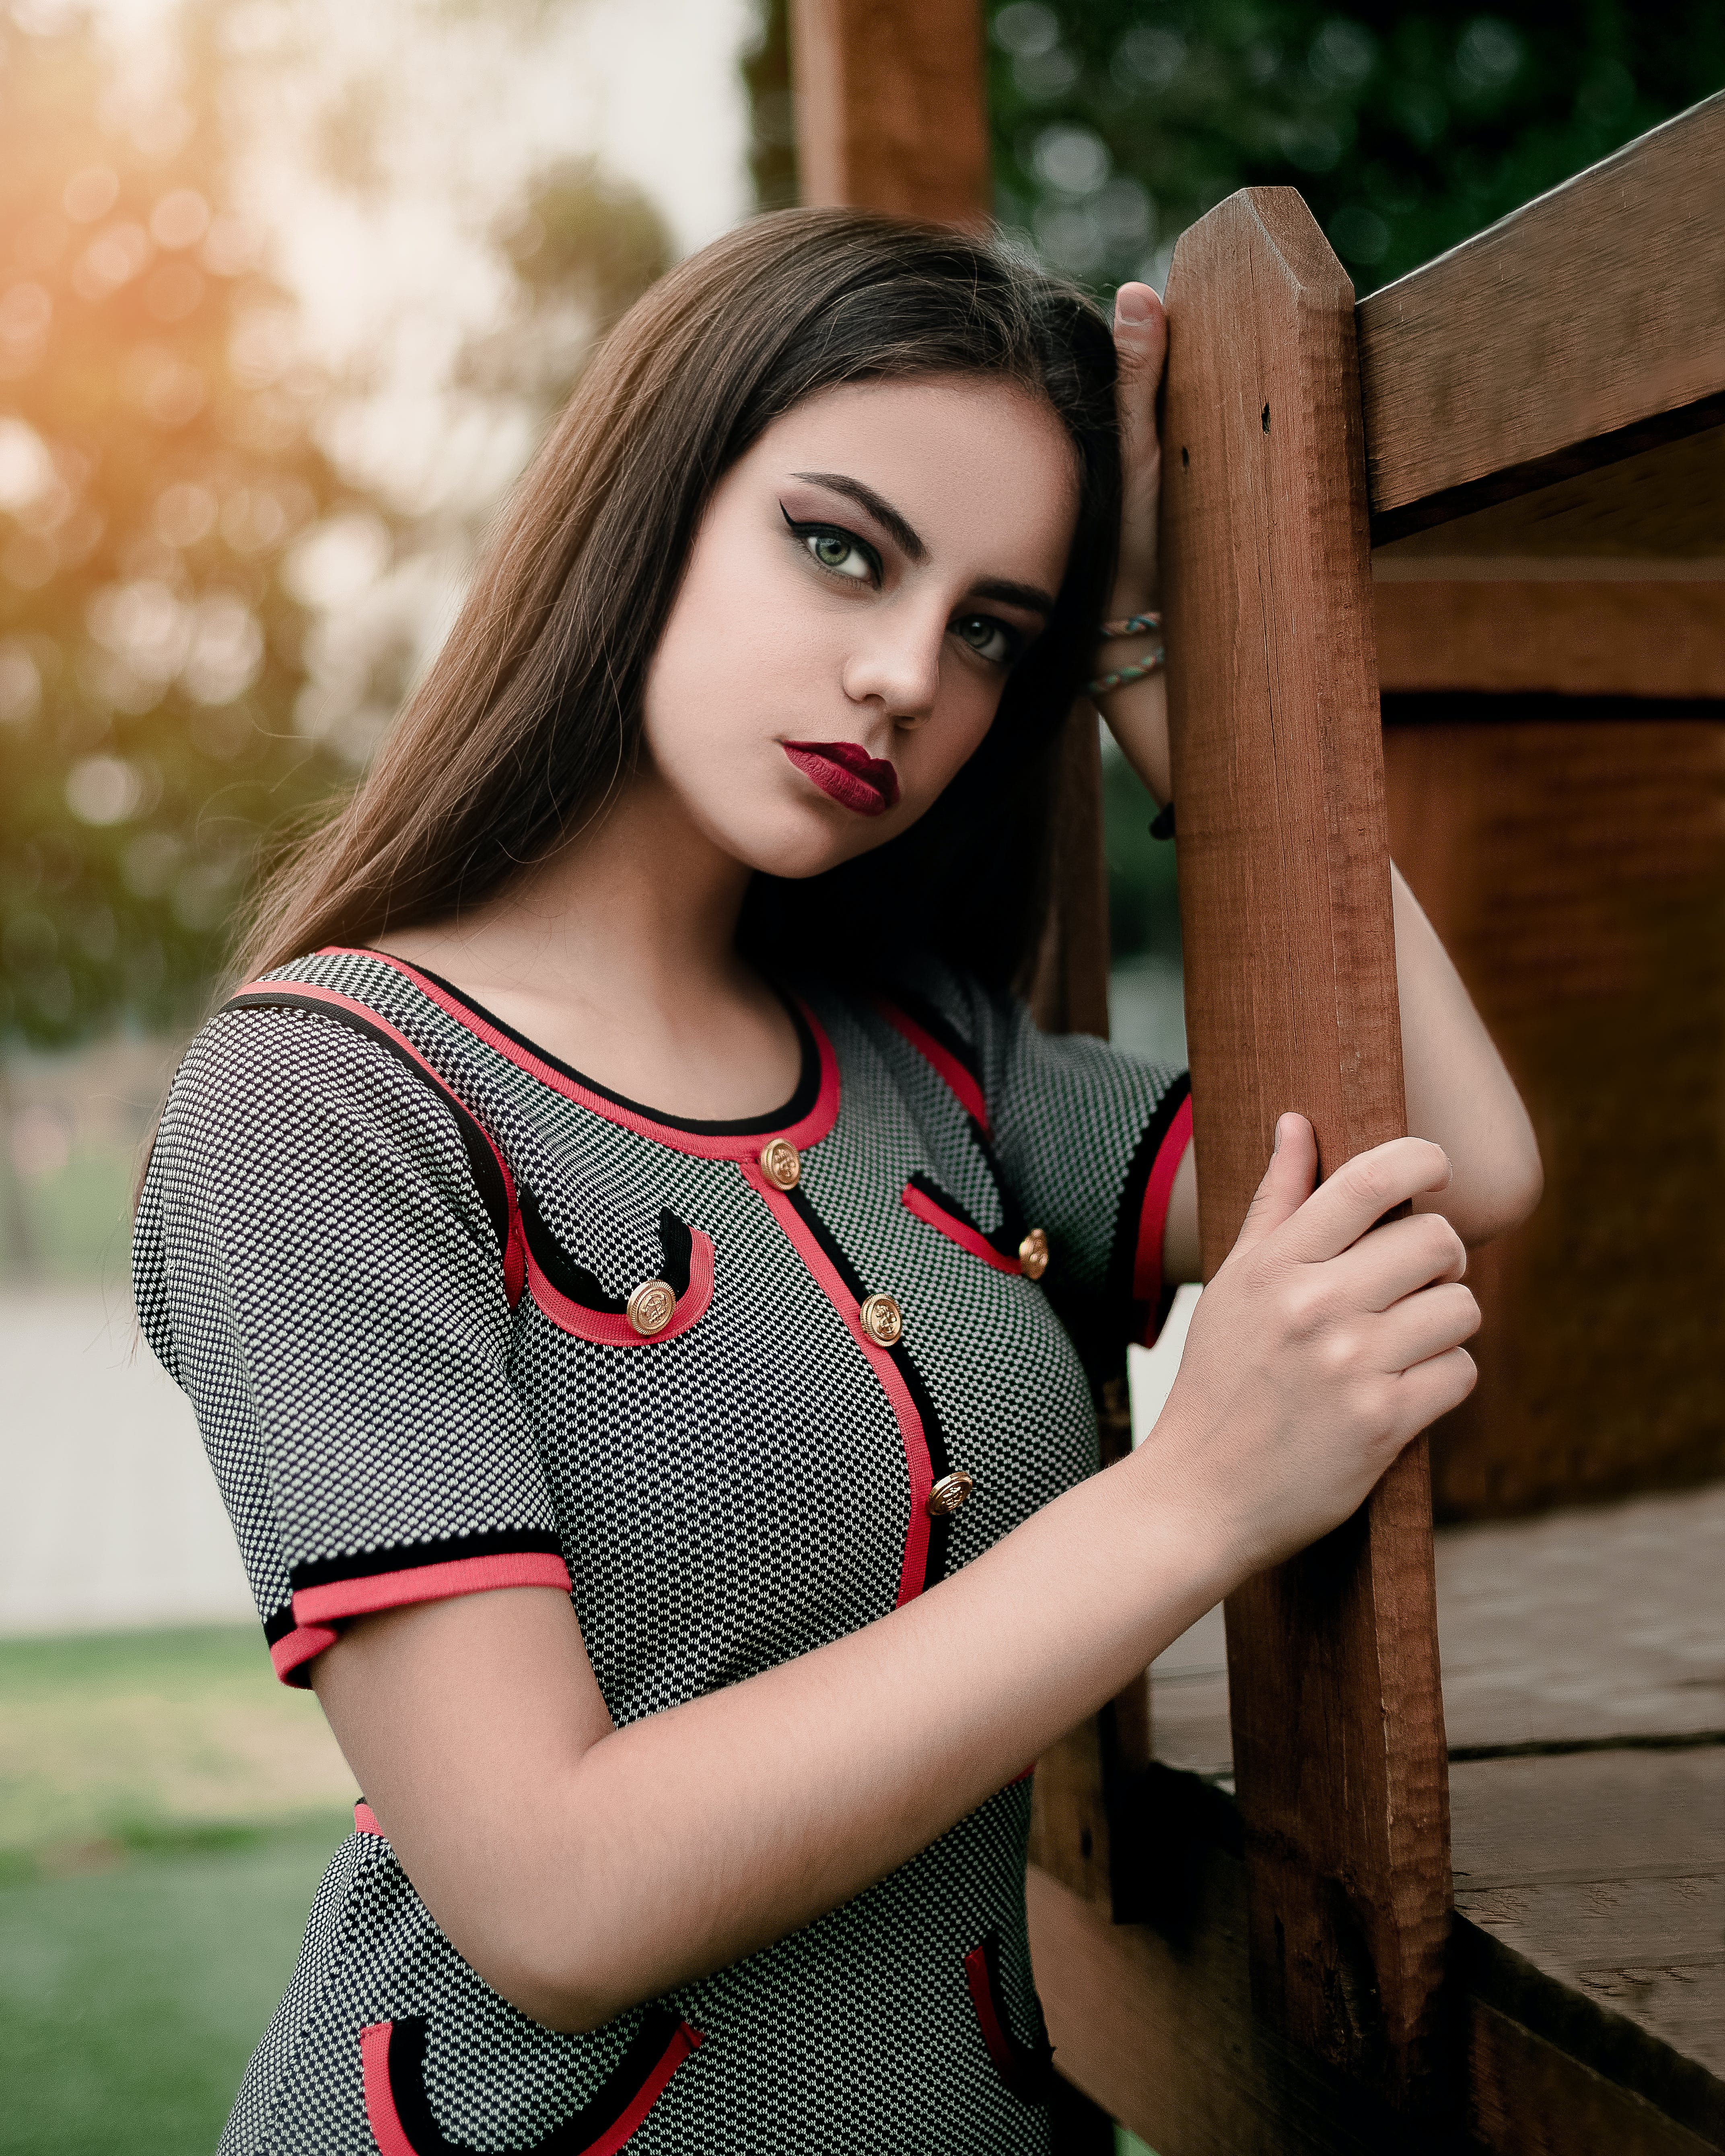 Photo of Woman Leaning On Wooden Fence